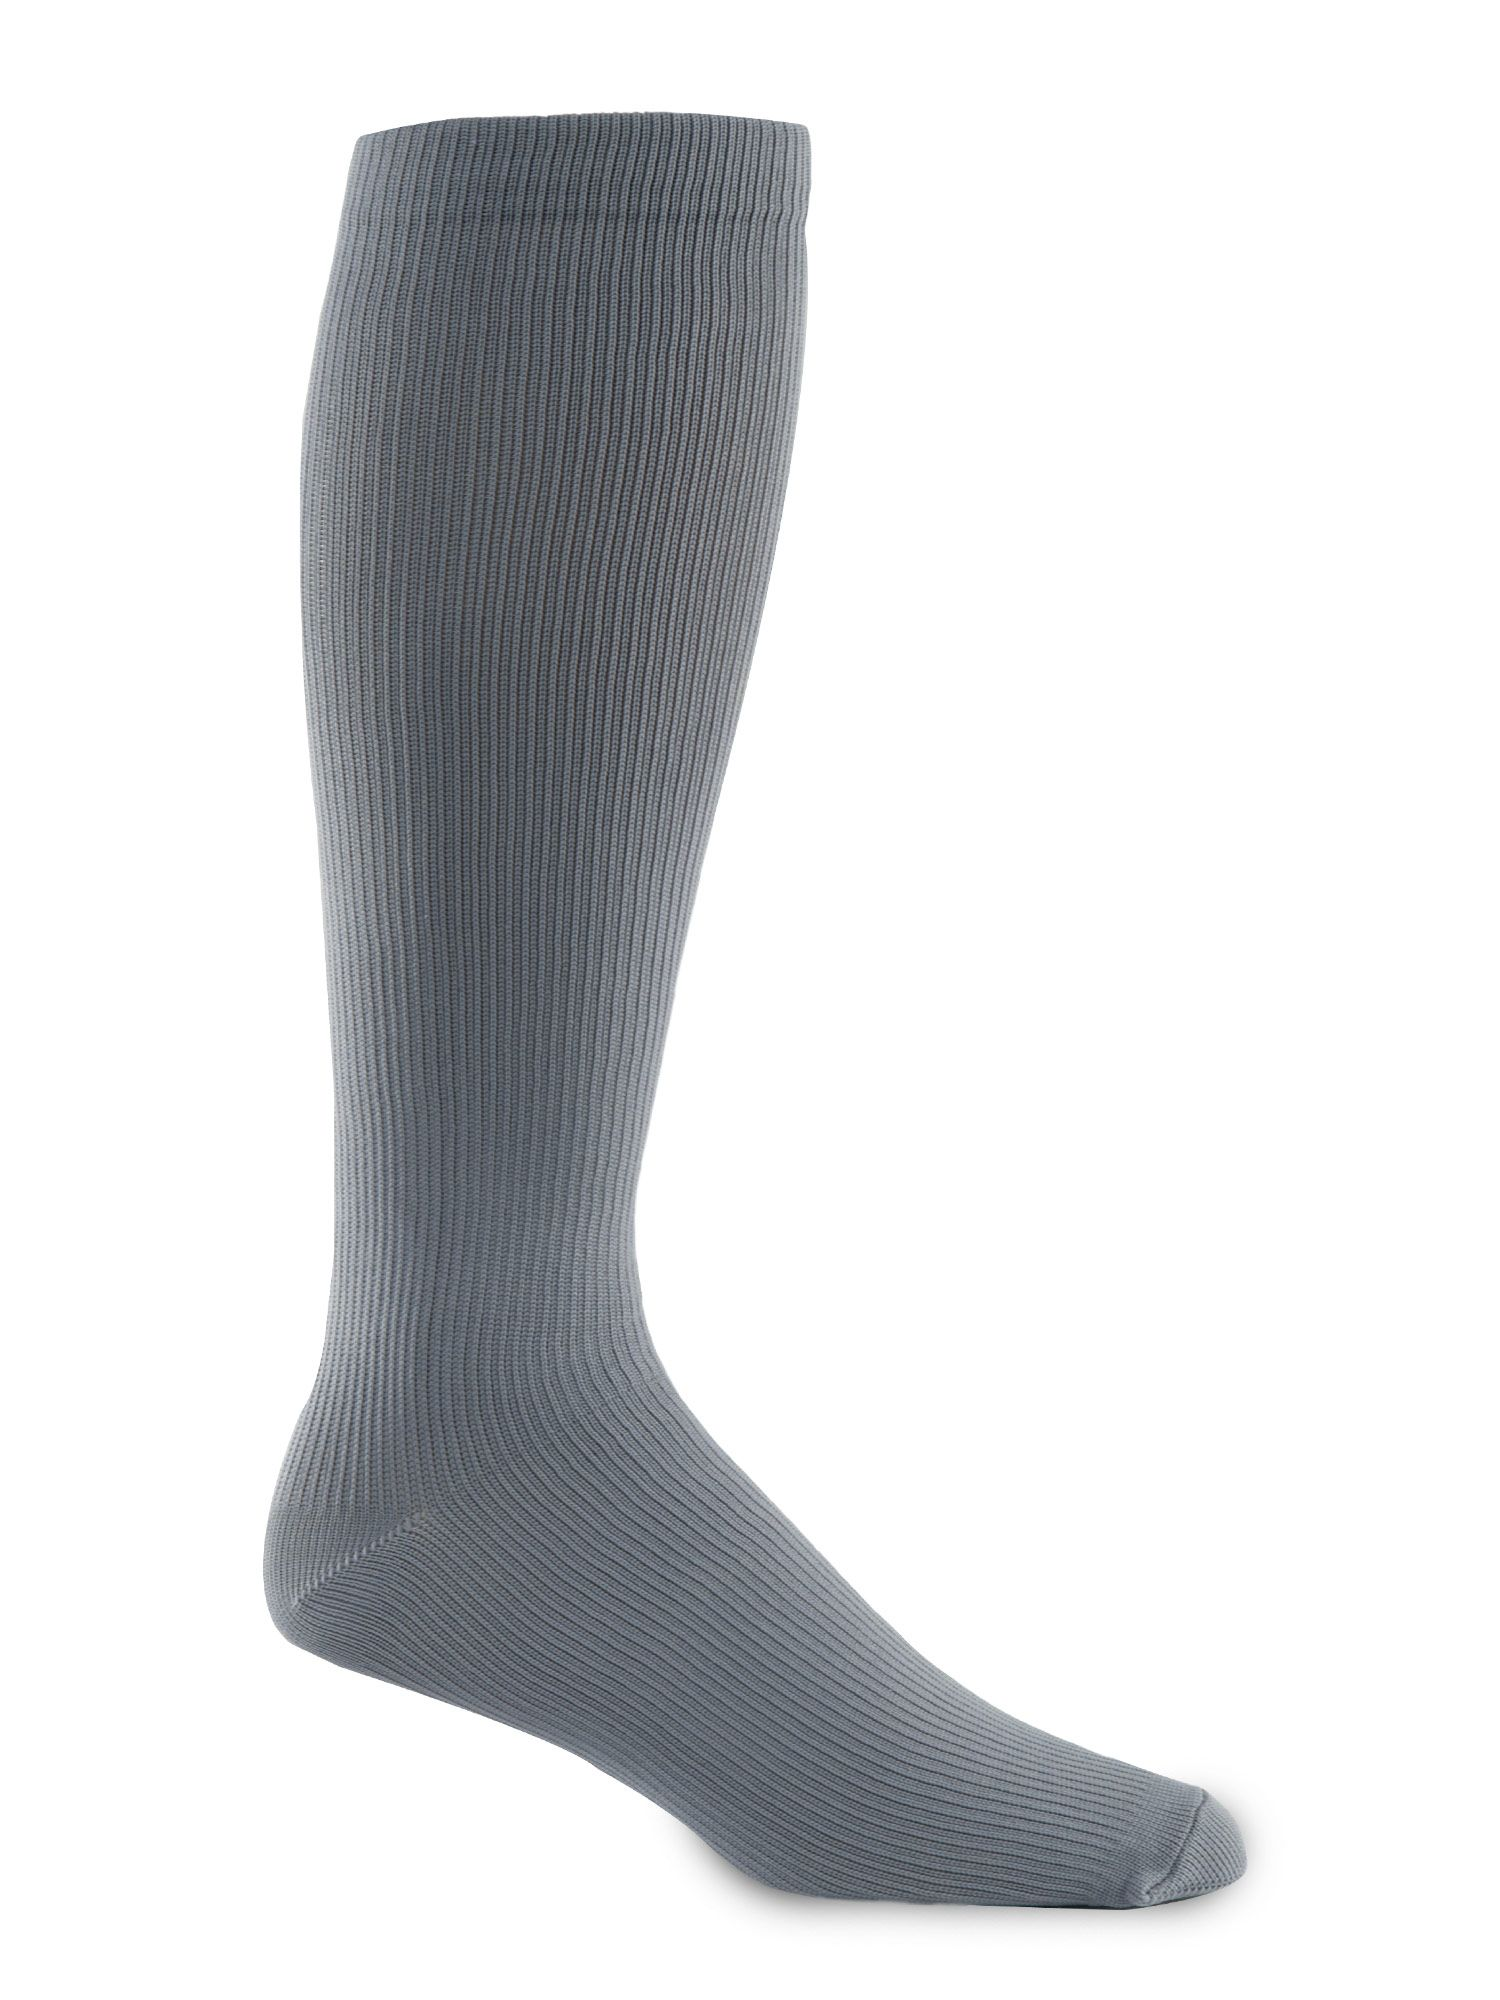 63df53862 Compression Socks. Tap to zoom